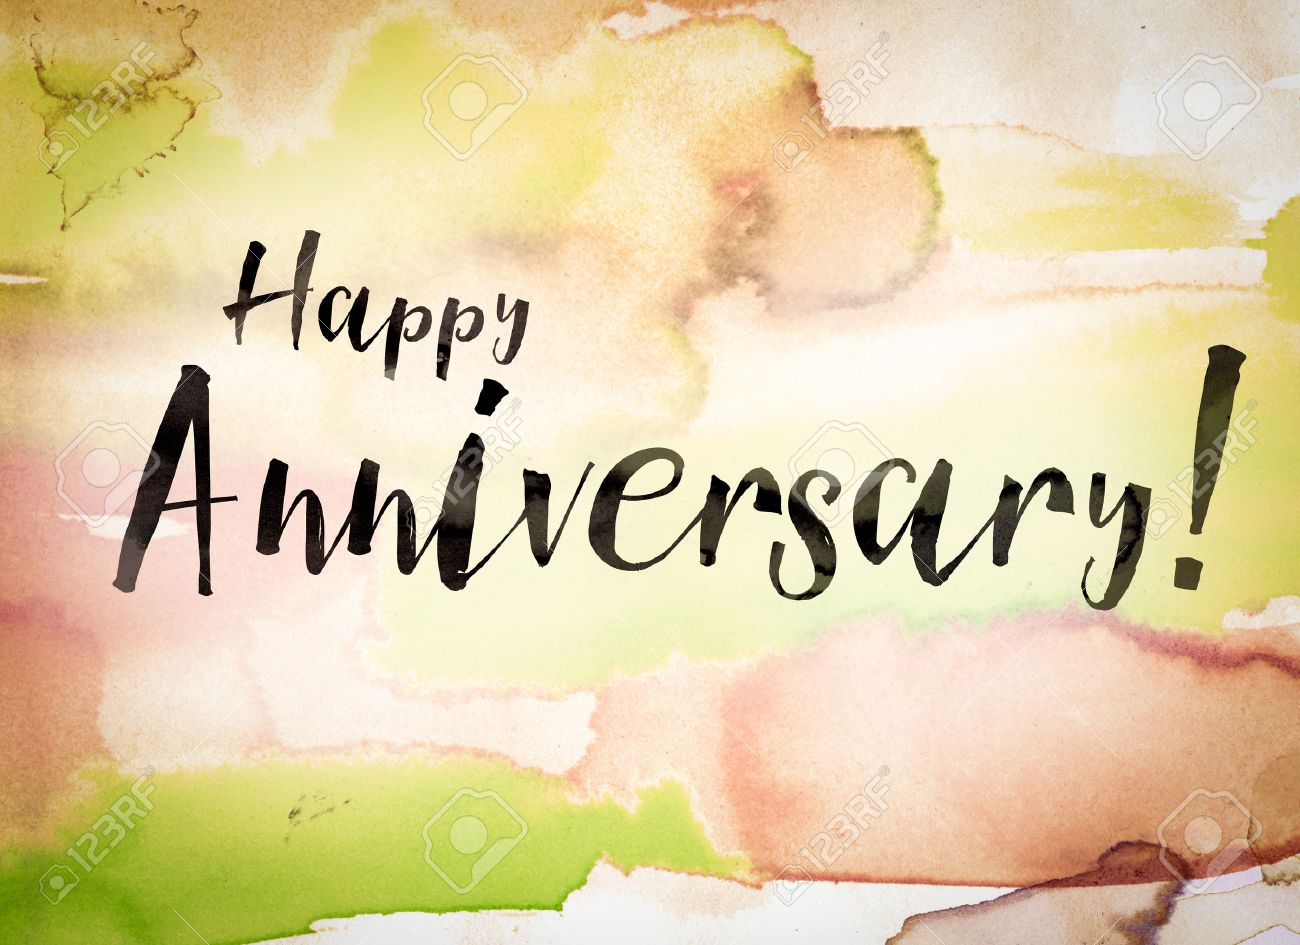 stock photo the word happy anniversary written in black paint on a colorful watercolor washed background